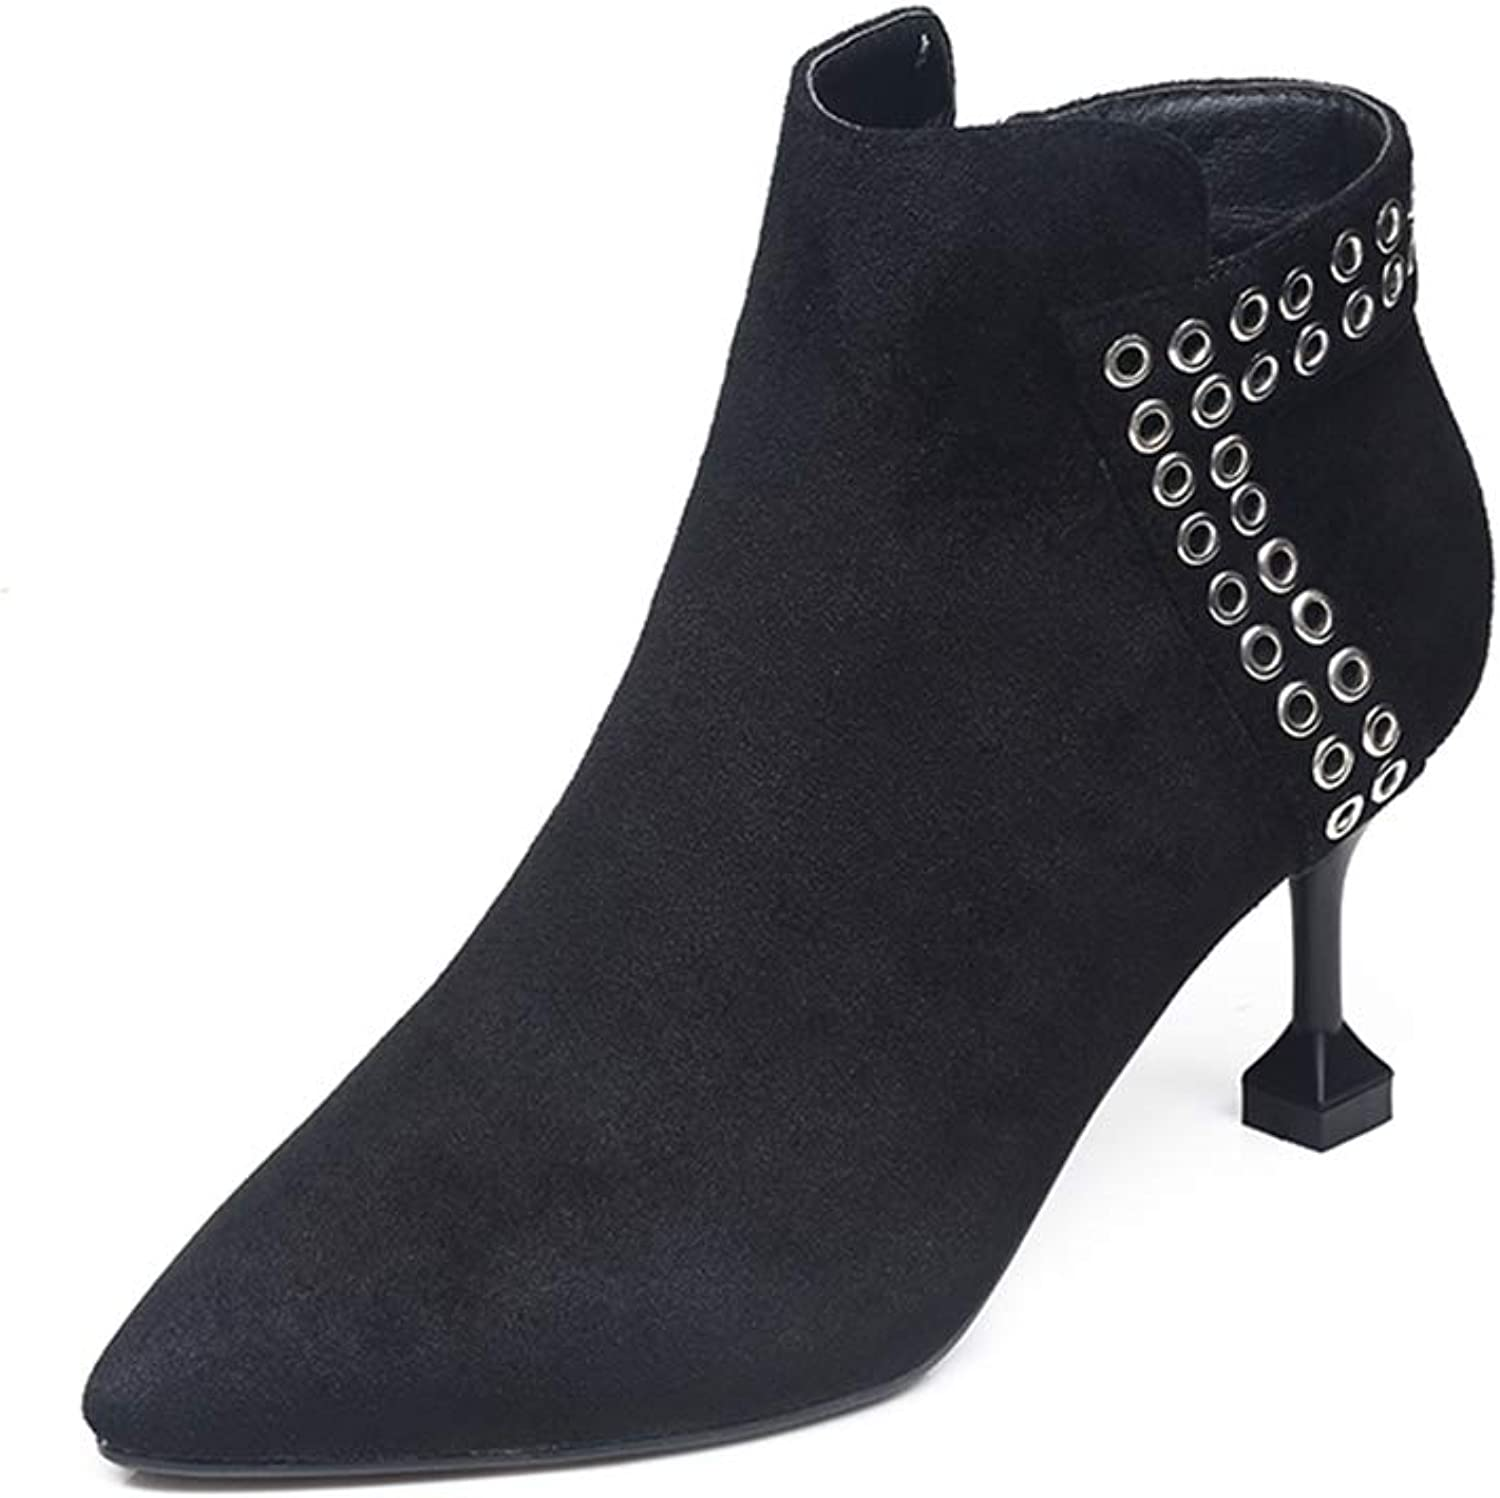 Stylish Sexy Rivet Black Ankle Boots for Women shoes Pointed Toe Thin High Heels Zipper Chelsea Boots